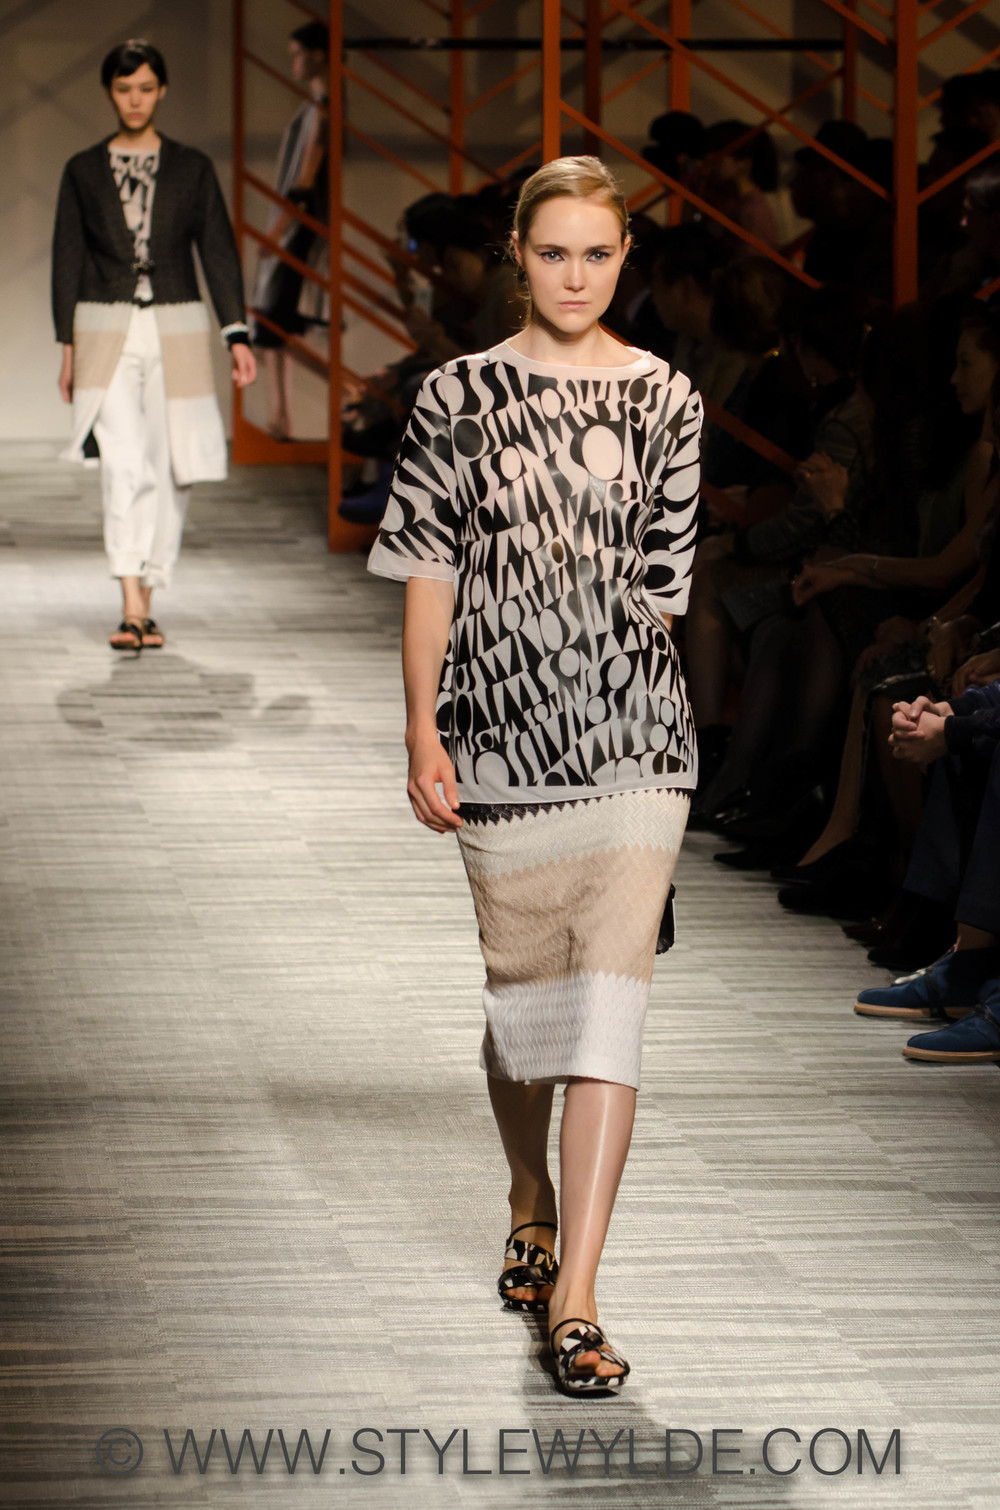 STYLEWYLDE_Missoni_SS2014 (1 of 1)-23.jpg